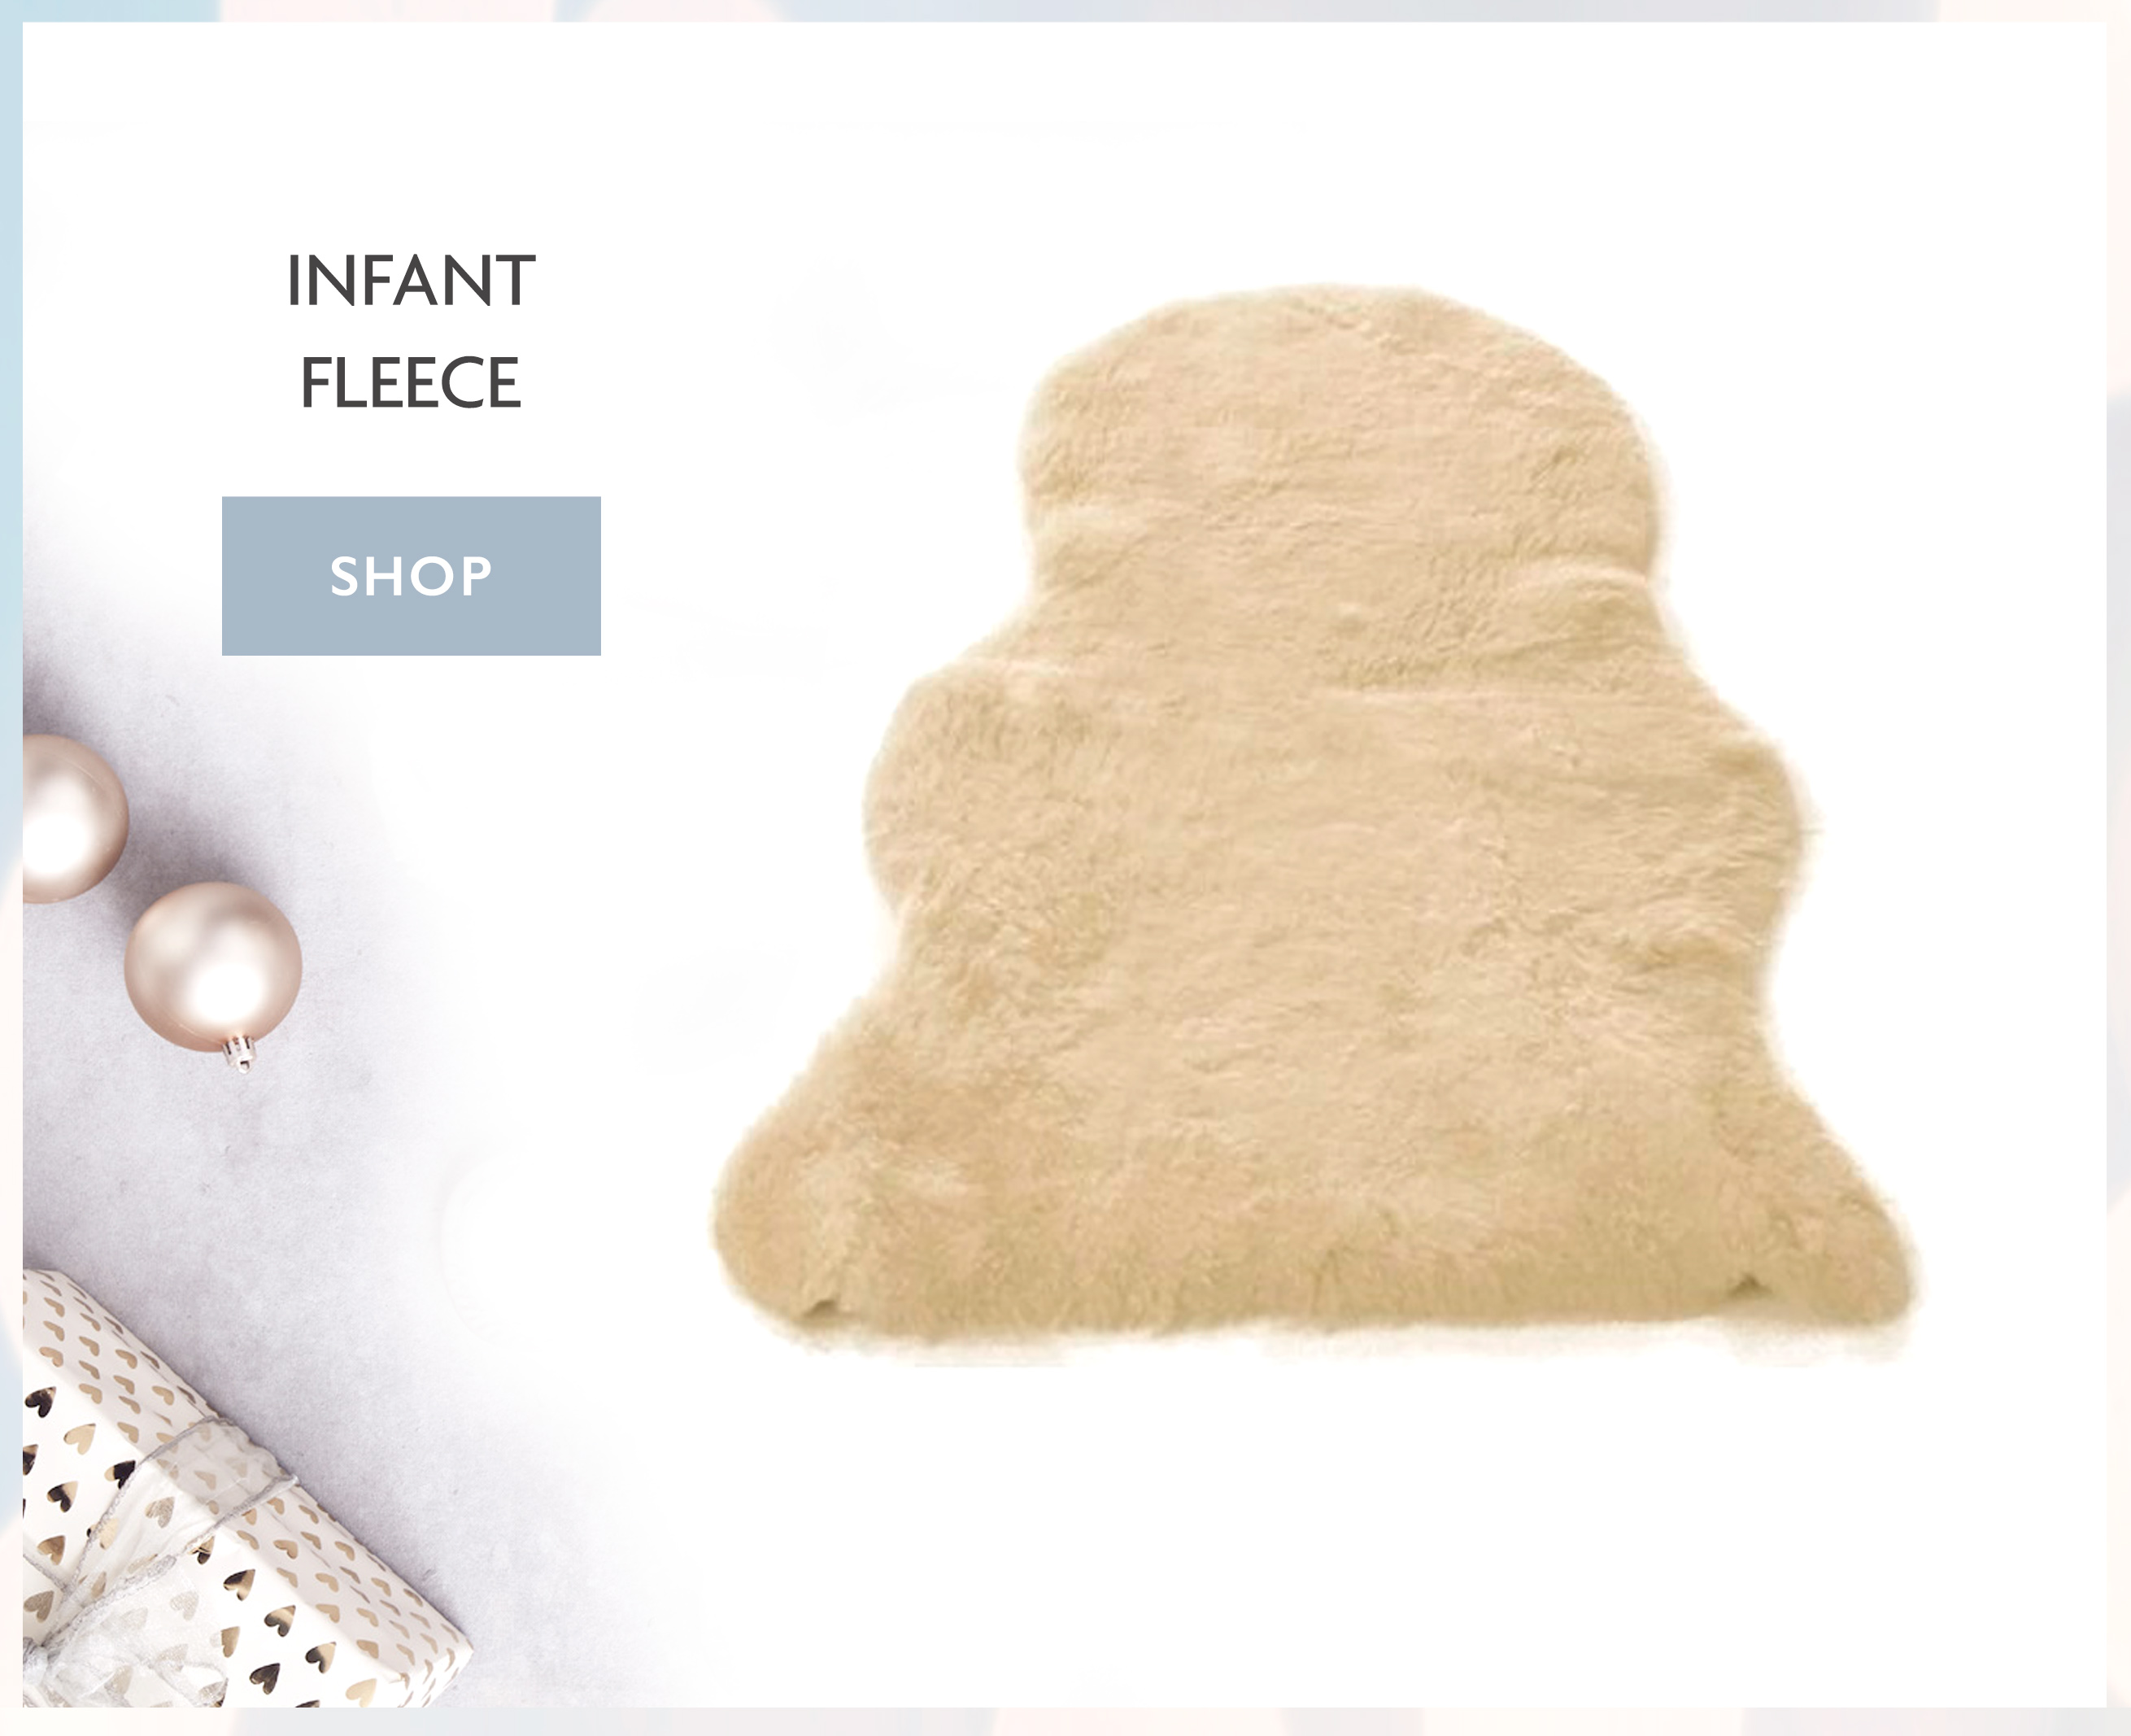 Infant Fleece